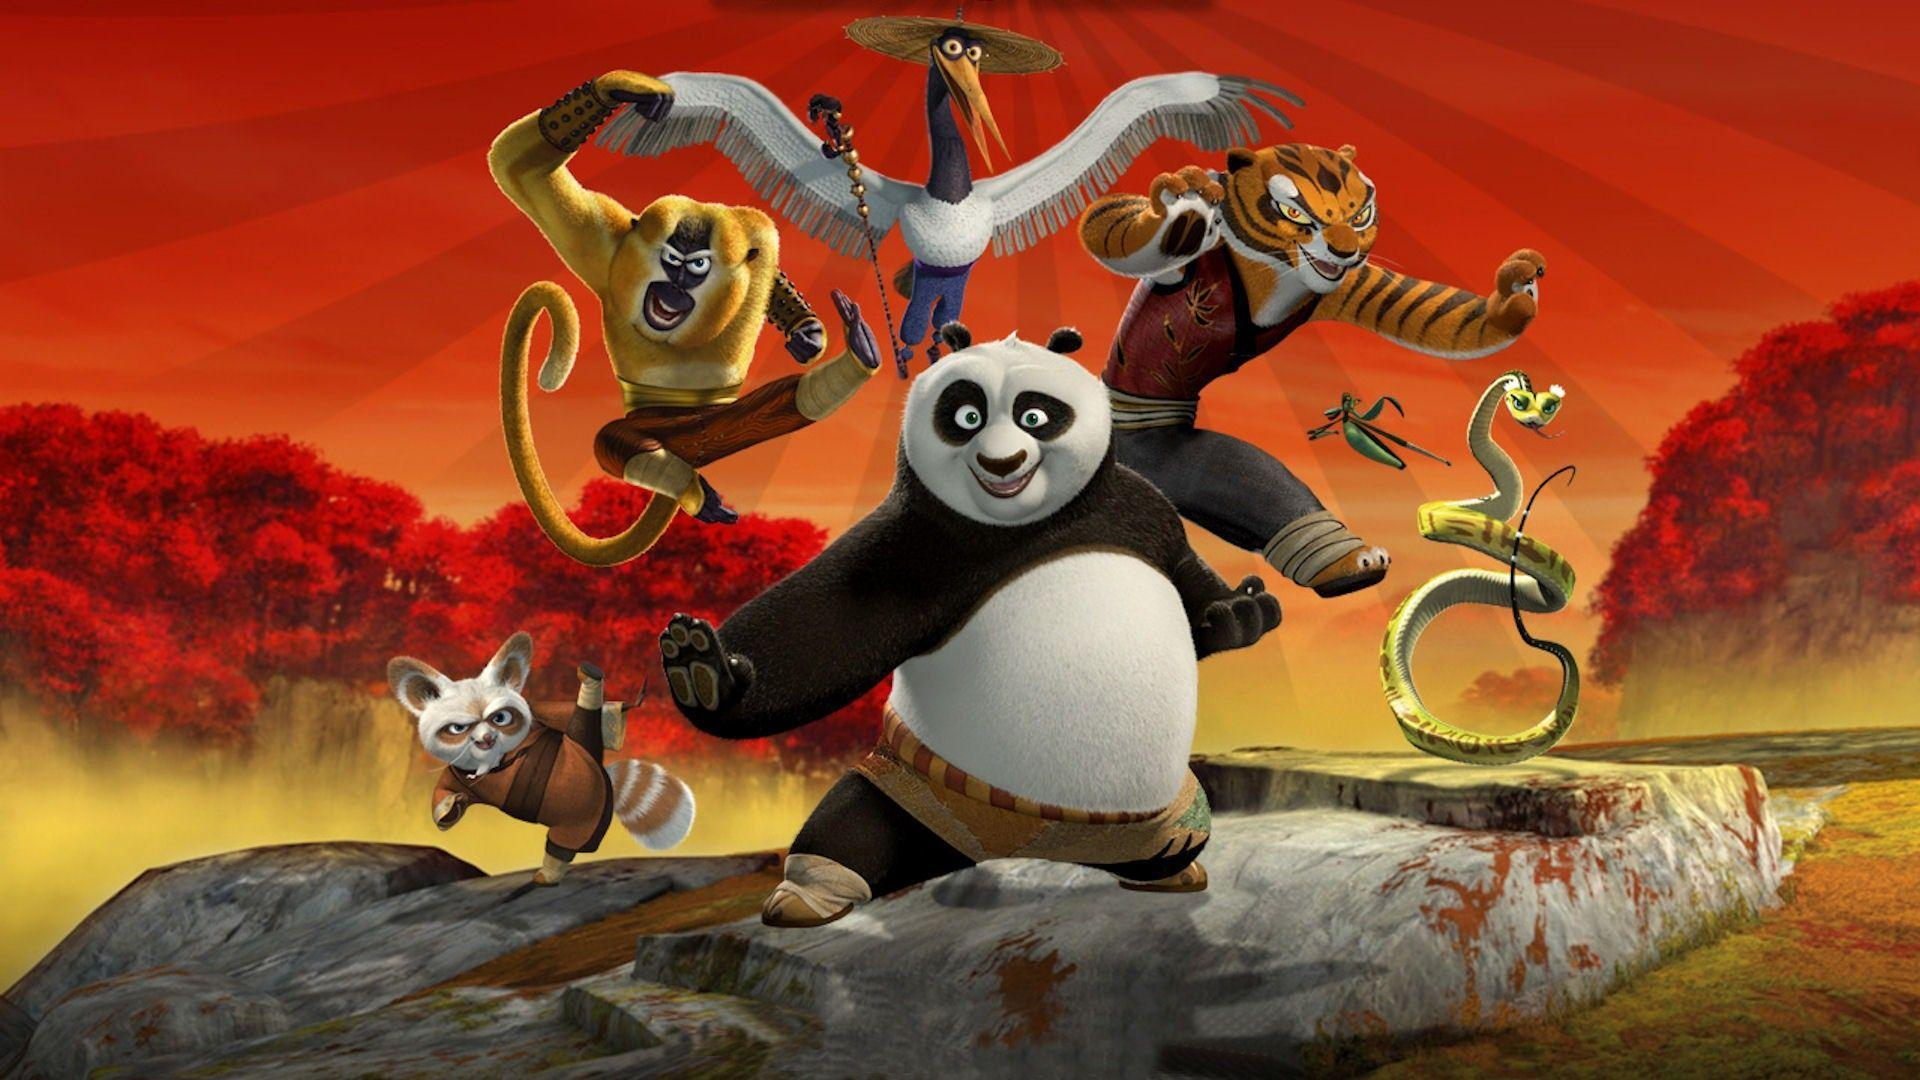 Master Shifu (voiced by Dustin Hoffman), Master Monkey (voiced by Jackie Chan), Master Crane (voiced by David Cross), Master Tigress (voiced by Angelina Jolie), Master Mantis (voiced by Seth Rogen), Master Viper (voiced by Lucy Liu) and Po (voiced by Jack Black) in Kung Fu Panda (2008)